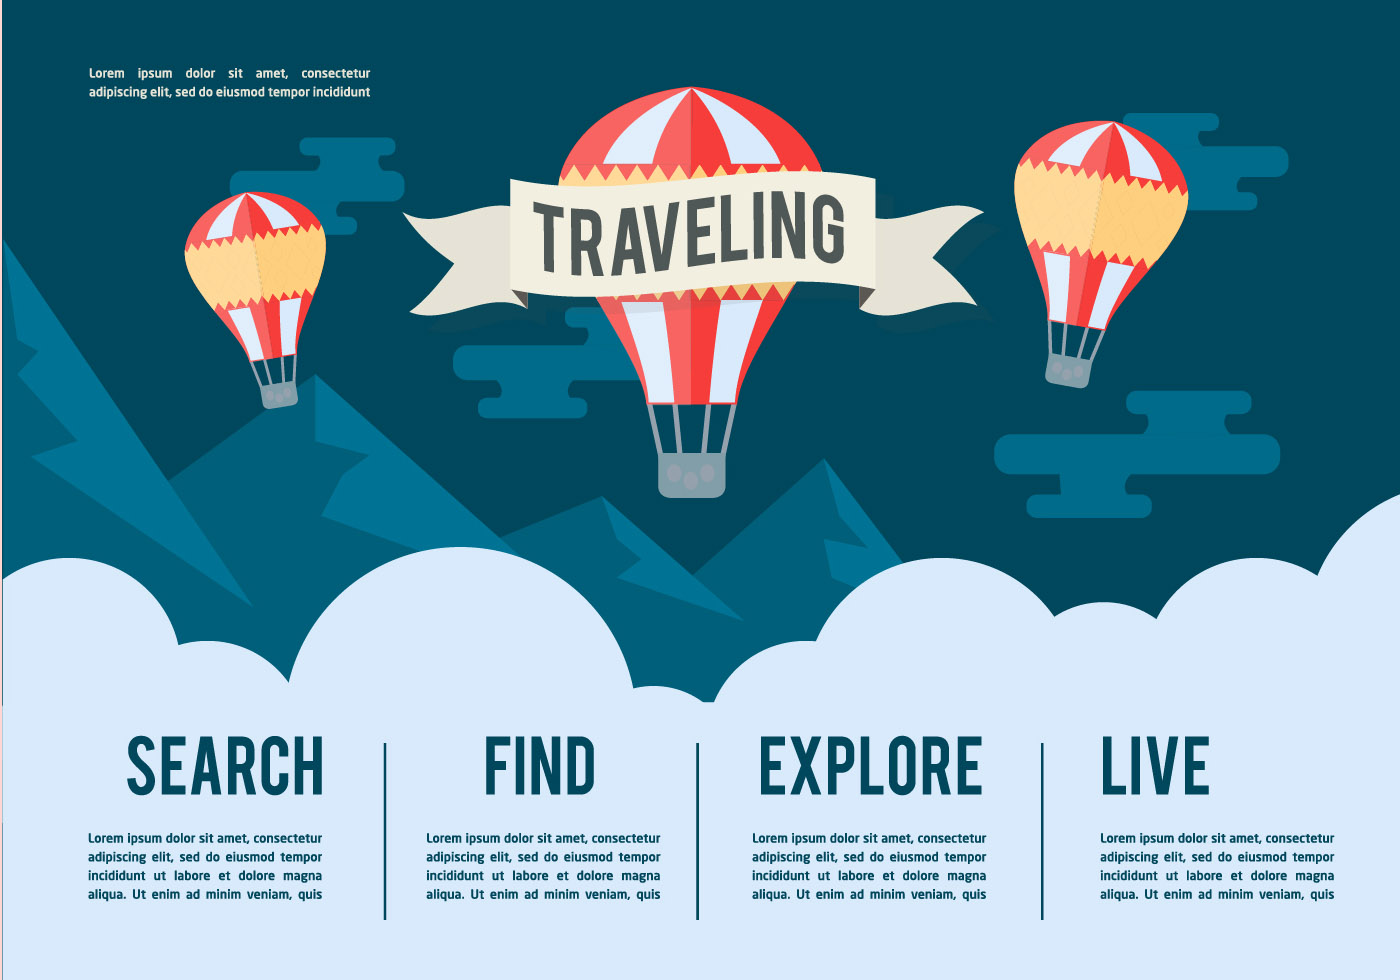 free-travel-vector-illustration.jpg